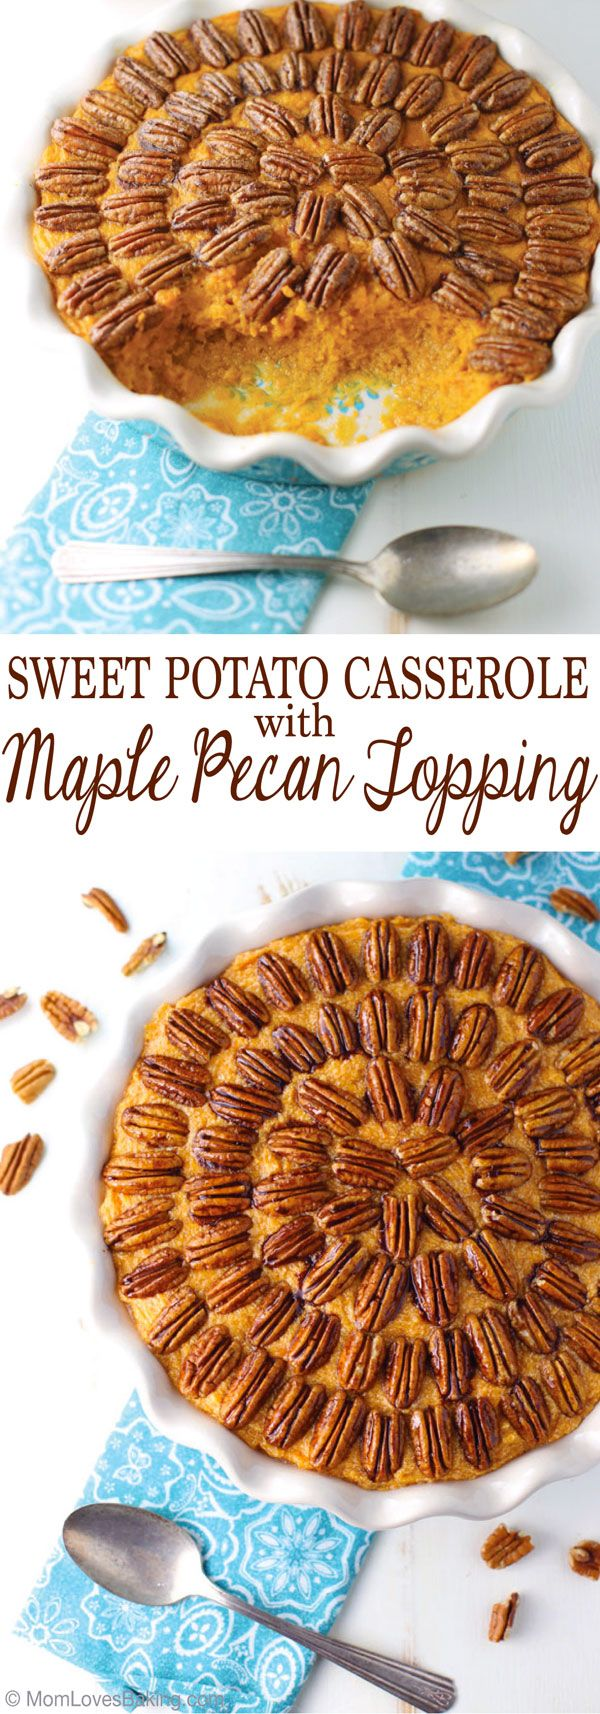 Sweet Potato Casserole with Maple Pecan Topping and Barber Foods Chicken is a delicious meal that you can have on the table in no time. Recipe is on MomLovesBaking.com. AD